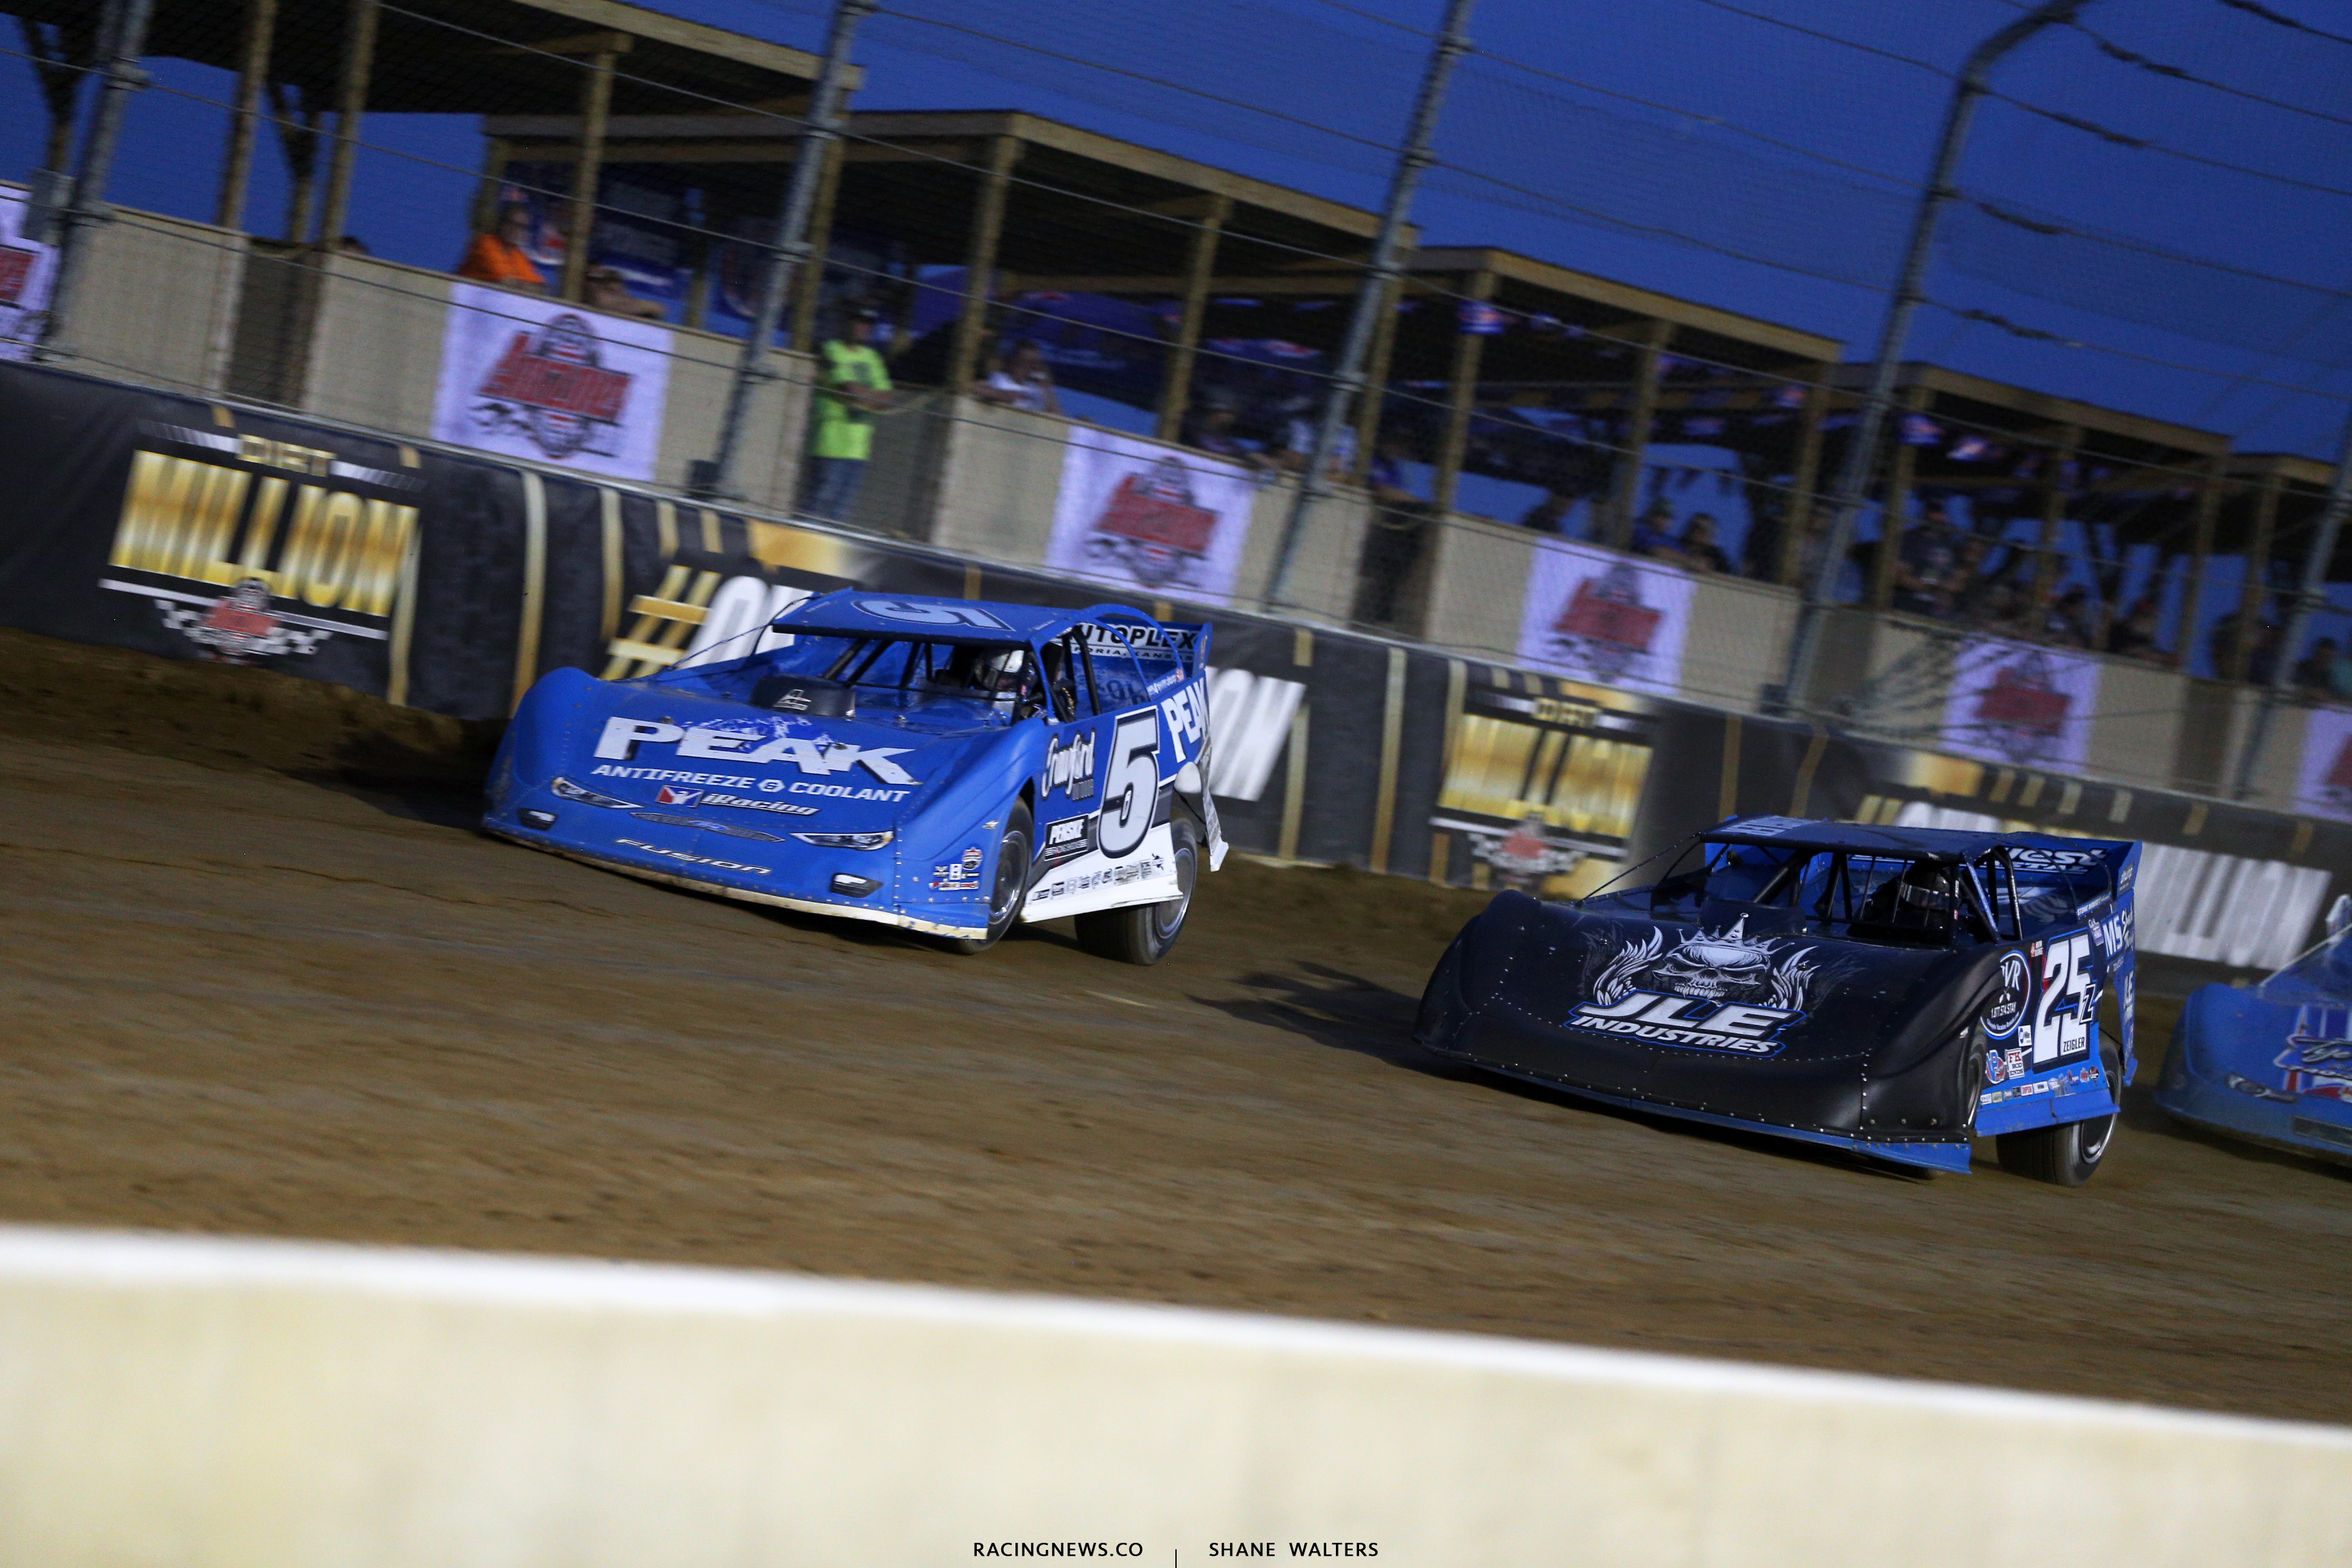 Don O'Neal and Mason Zeigler in the Dirt Million at Mansfield Motor Speedway 6470